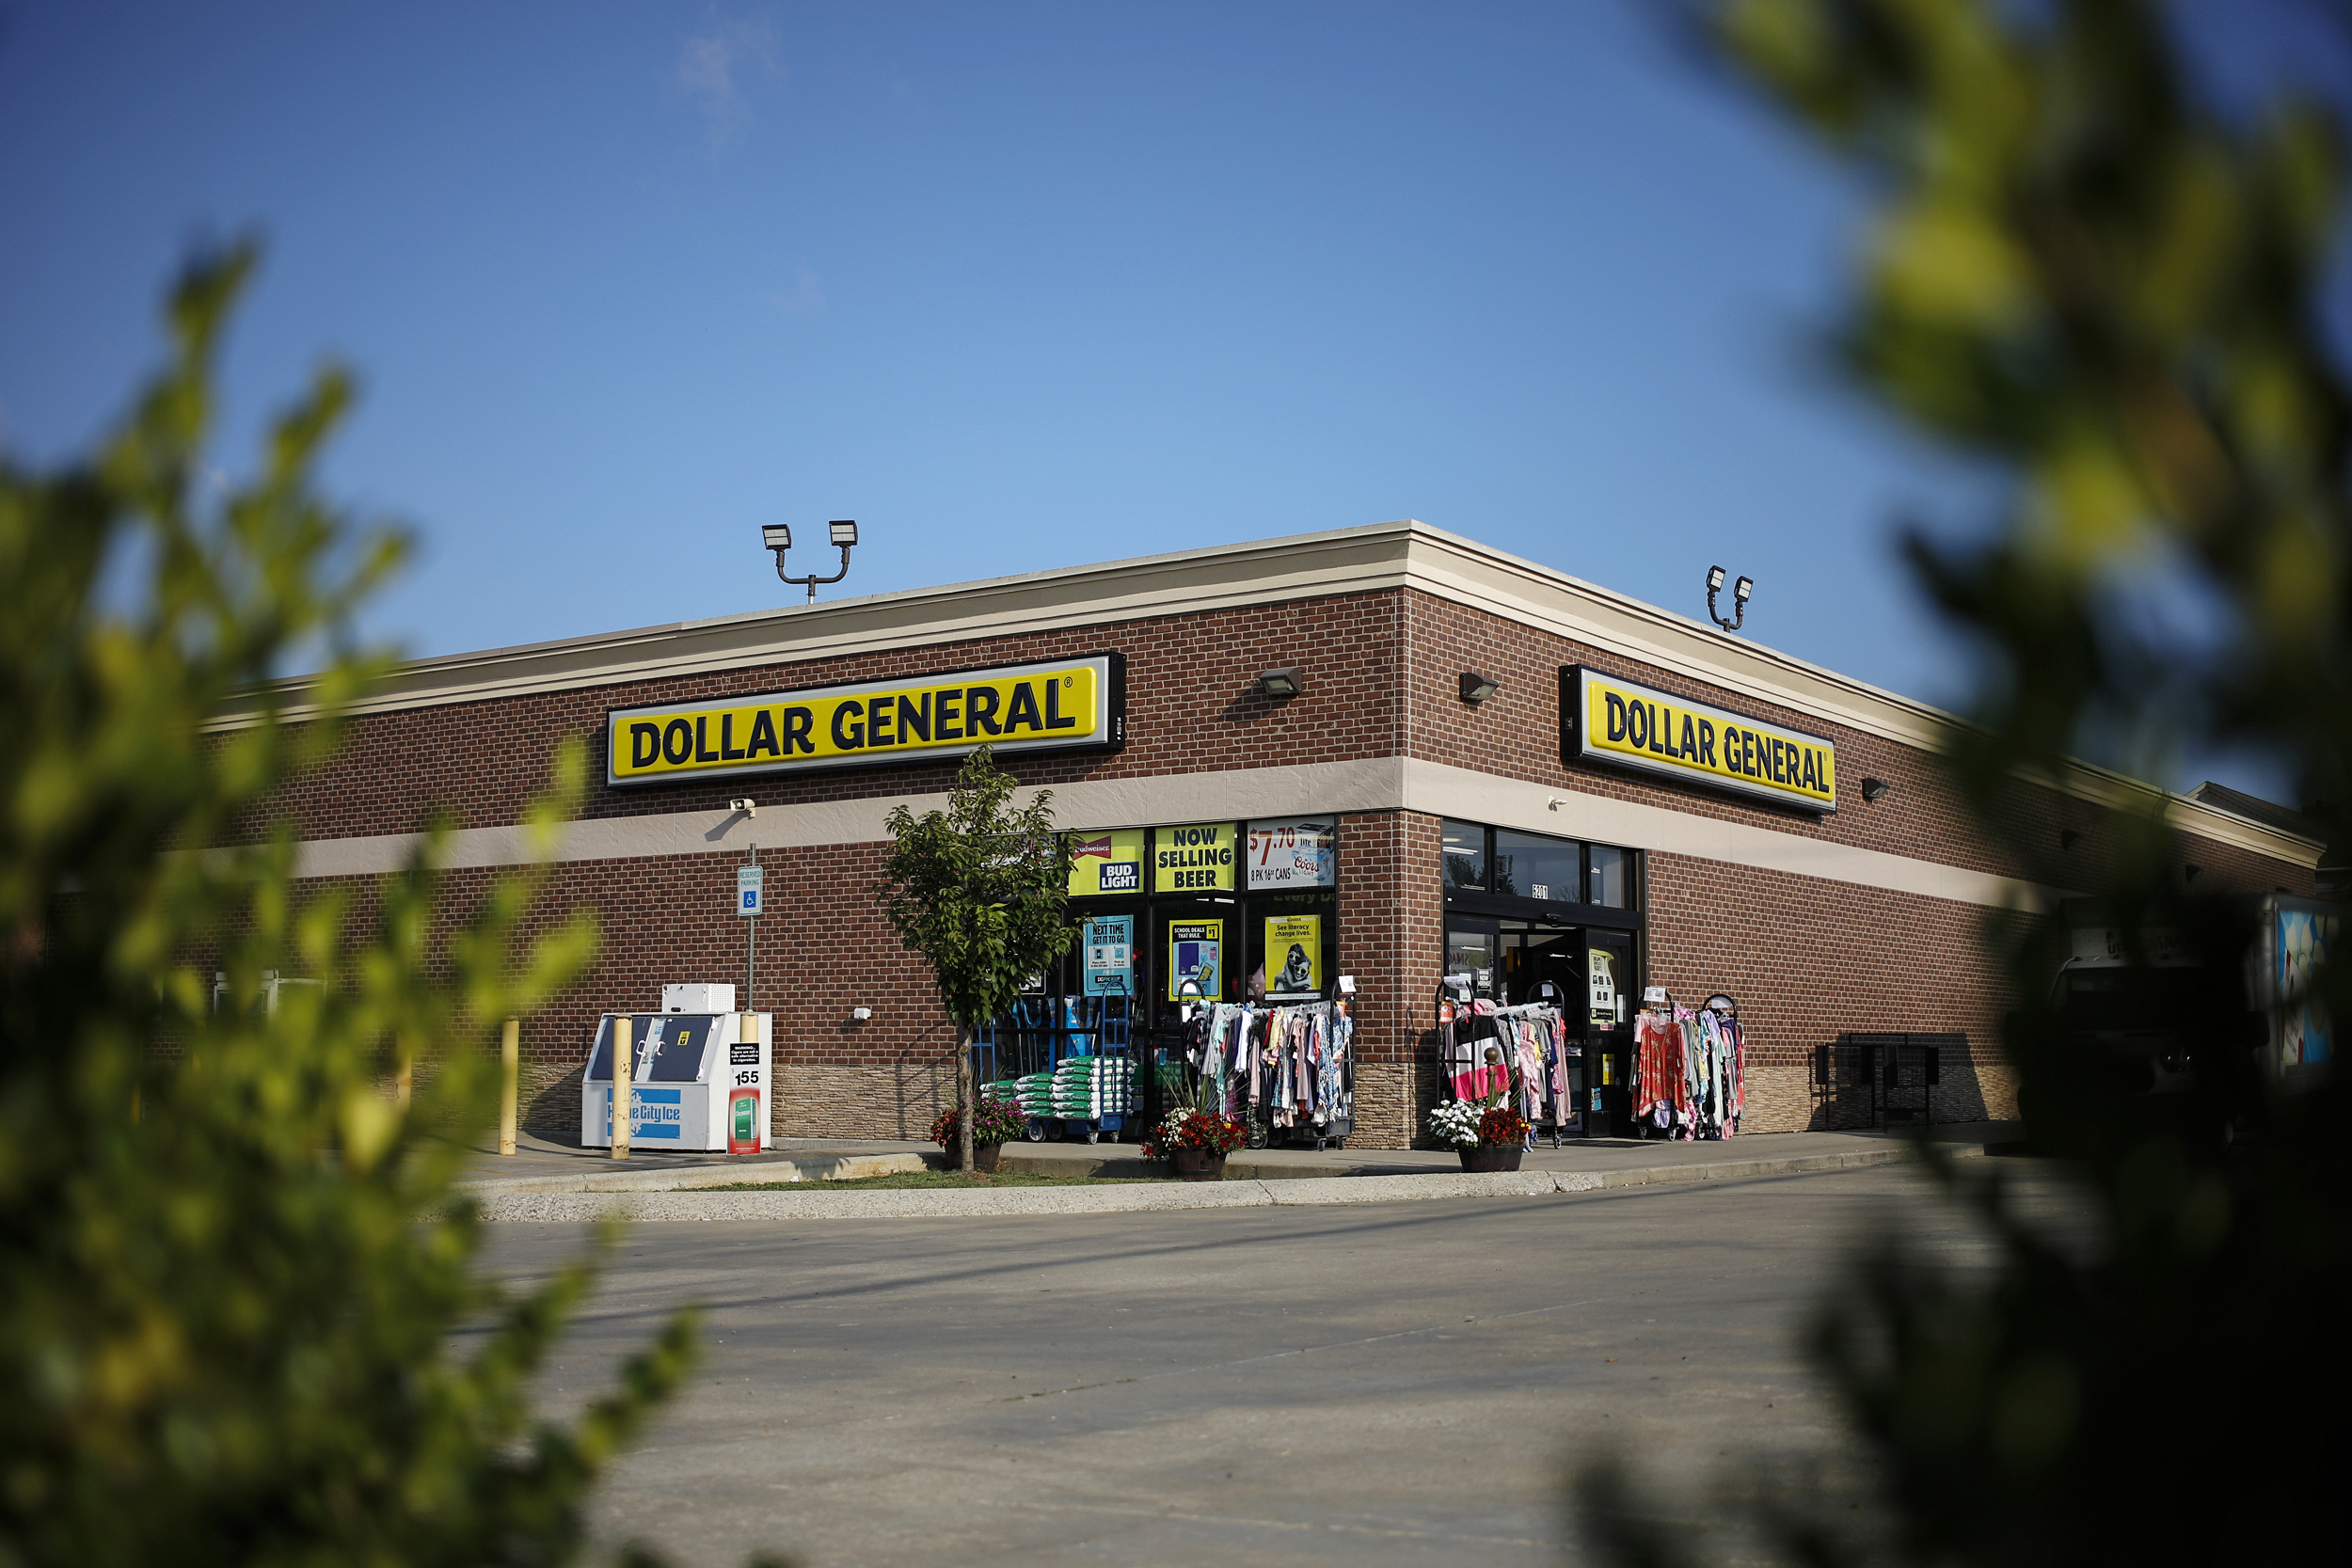 Dollar General came for your grocery dollars. Now it wants a slice of your health care spending, too.